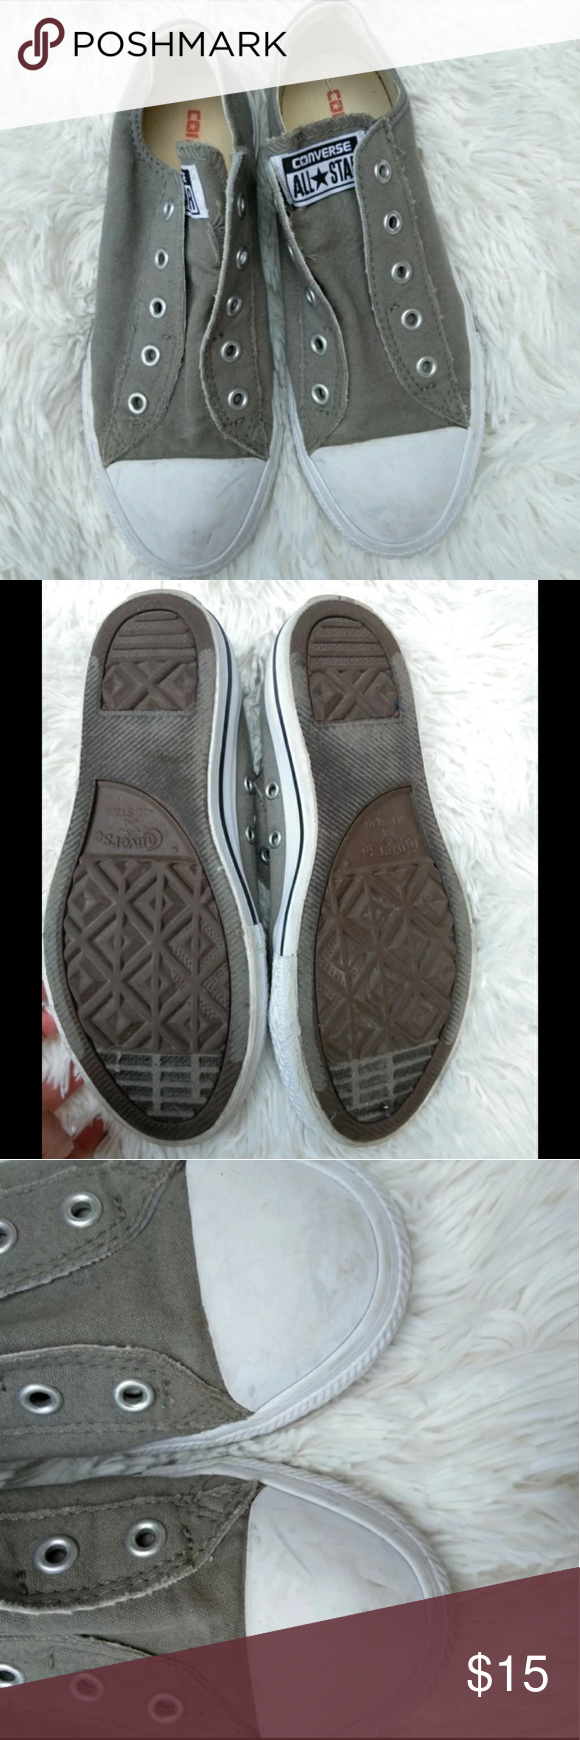 893878954908b0 Slip on converse Worn twice Size 3 in kids which is a size 6 women s Tags  converse slipon sneakers Converse Shoes Sneakers